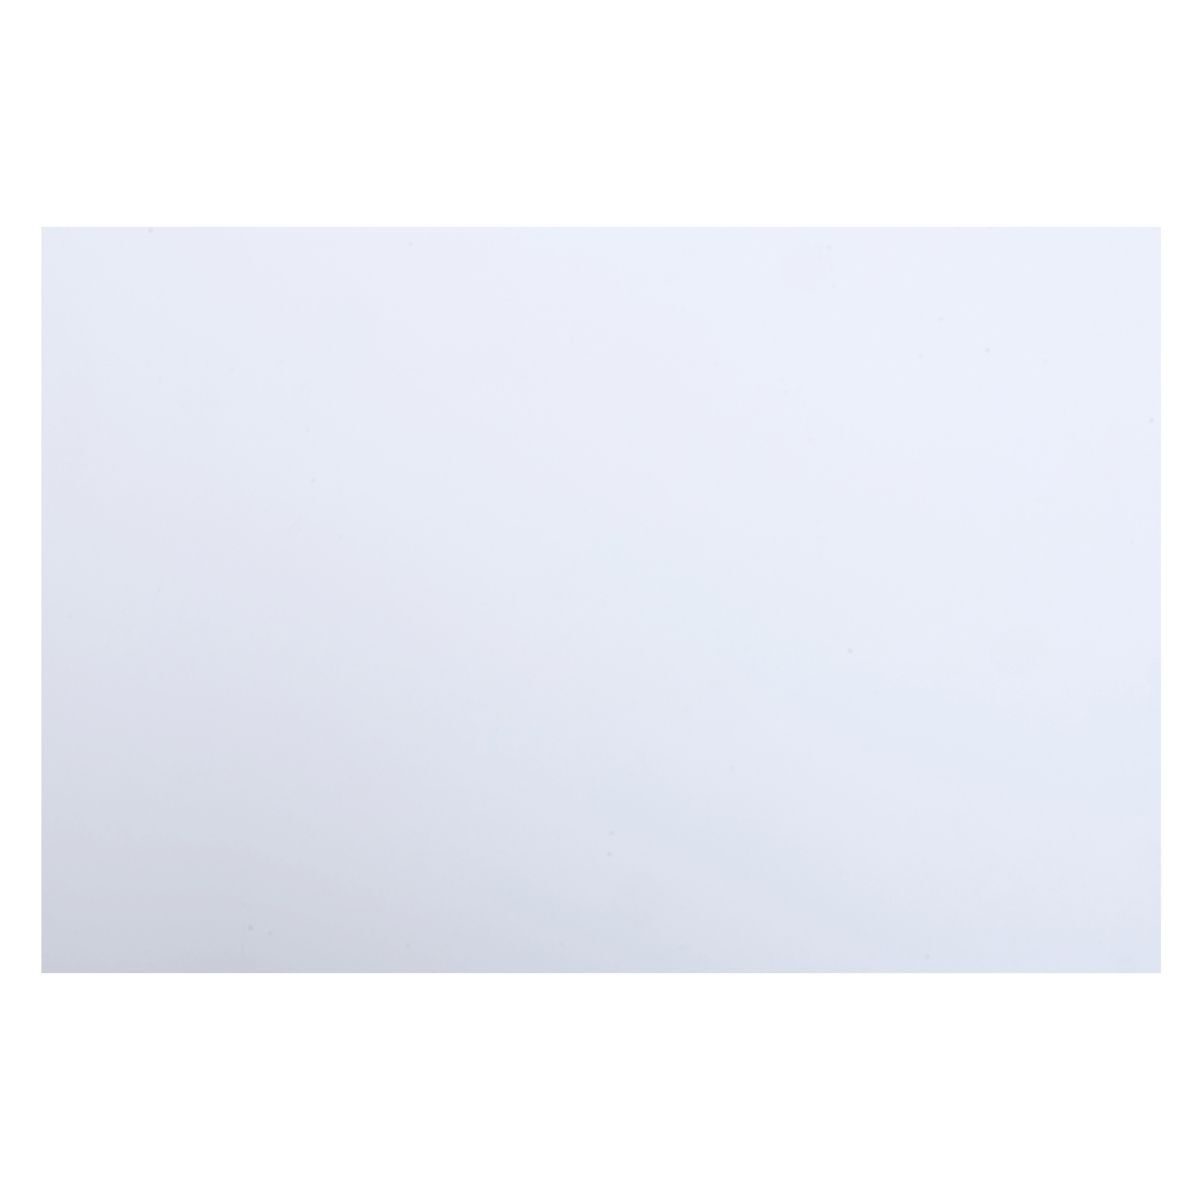 Ryman Mount Board 600mic 450x640mm White